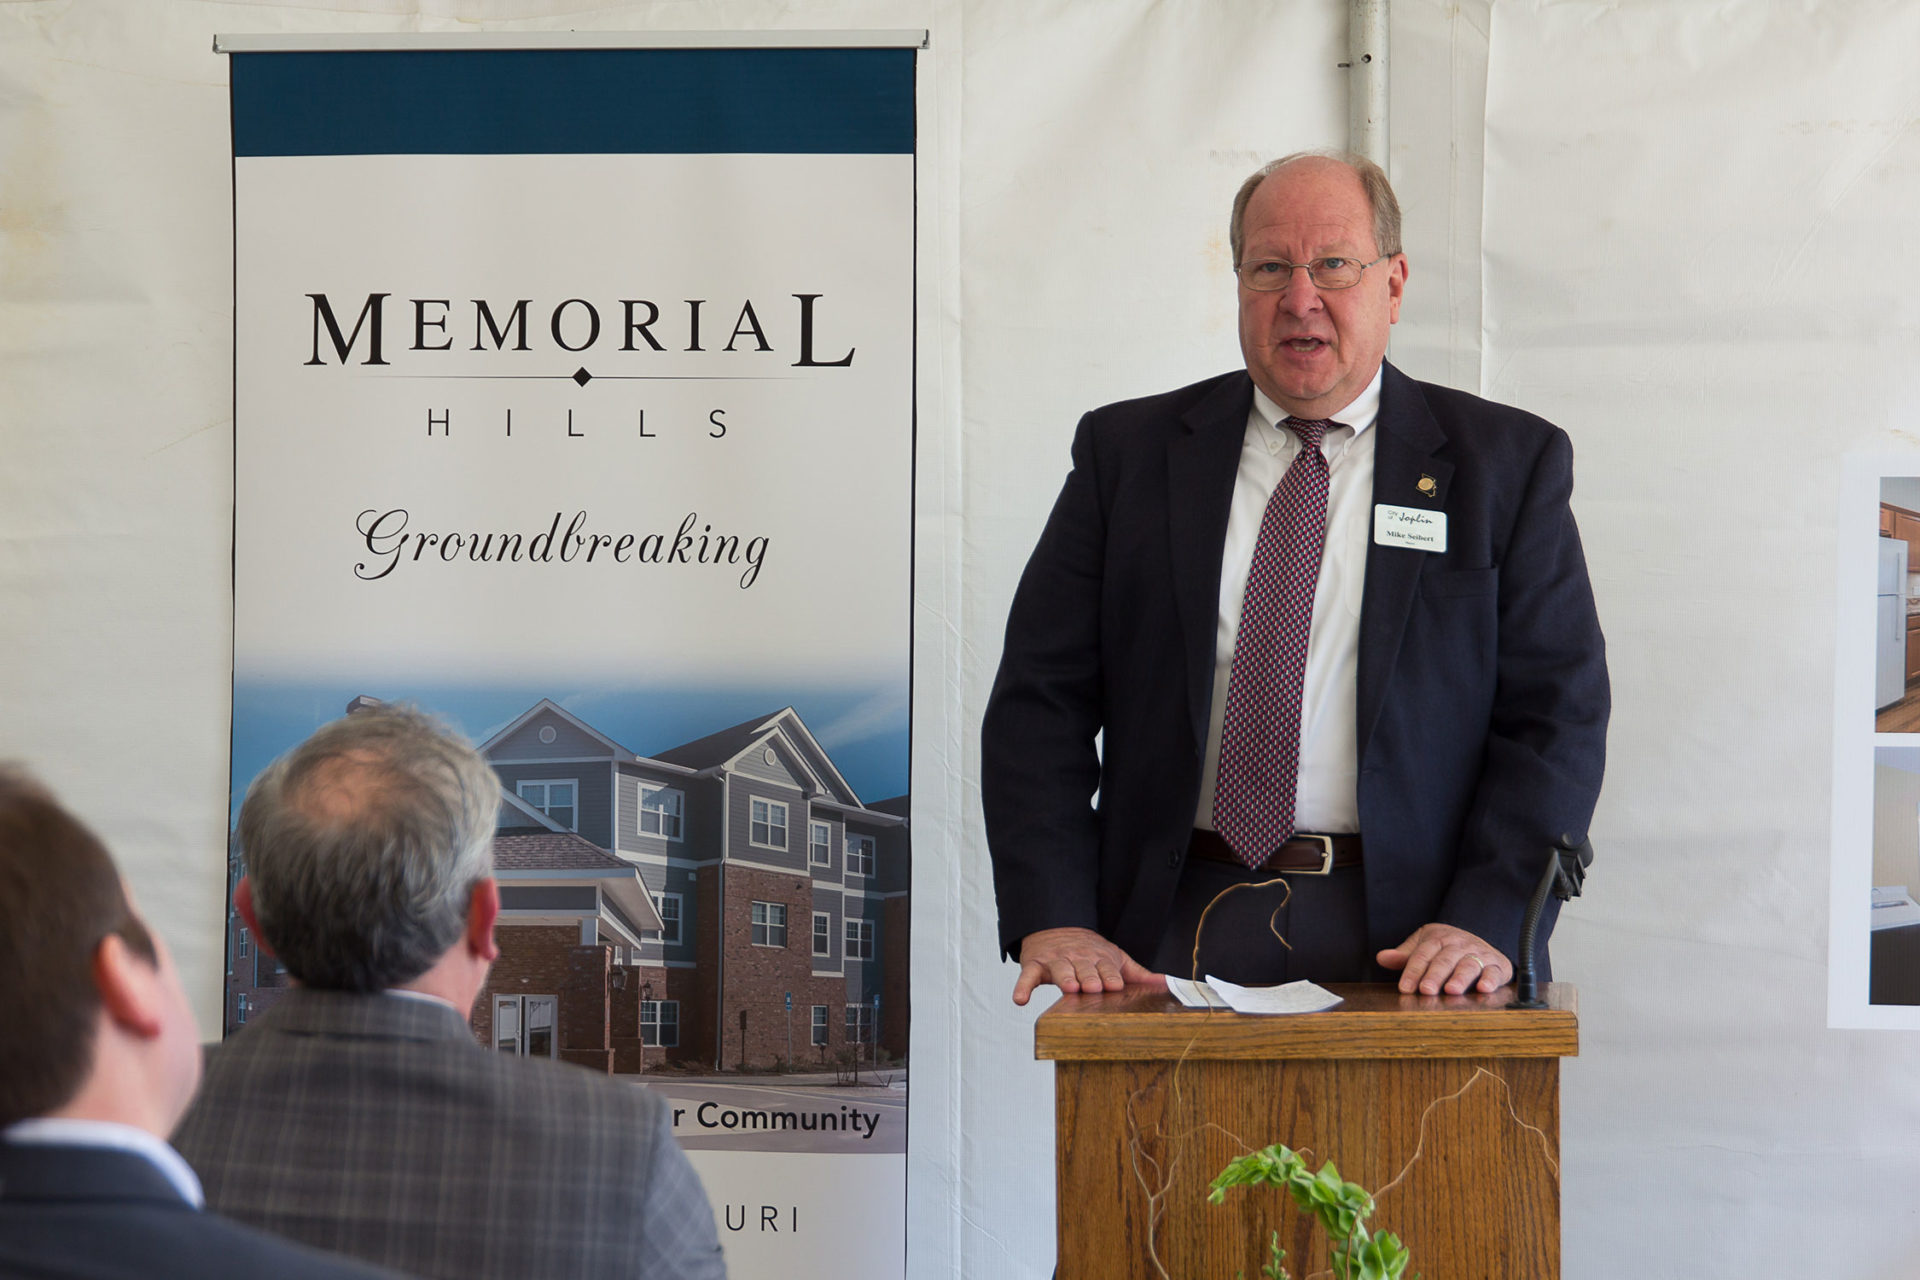 More Than 50 Community Members Attended The Memorial Hills Groundbreaking, Which Included A Brief Program With Remarks By Kevin Parker, President Of Parker Development, Fred Osborn, President Of Joplin Re-Development Corporation, Lane Roberts, Former Chief Police Of Joplin Police Department, And Robert O'Brian, President Of The Joplin Area Chamber Of Commerce.